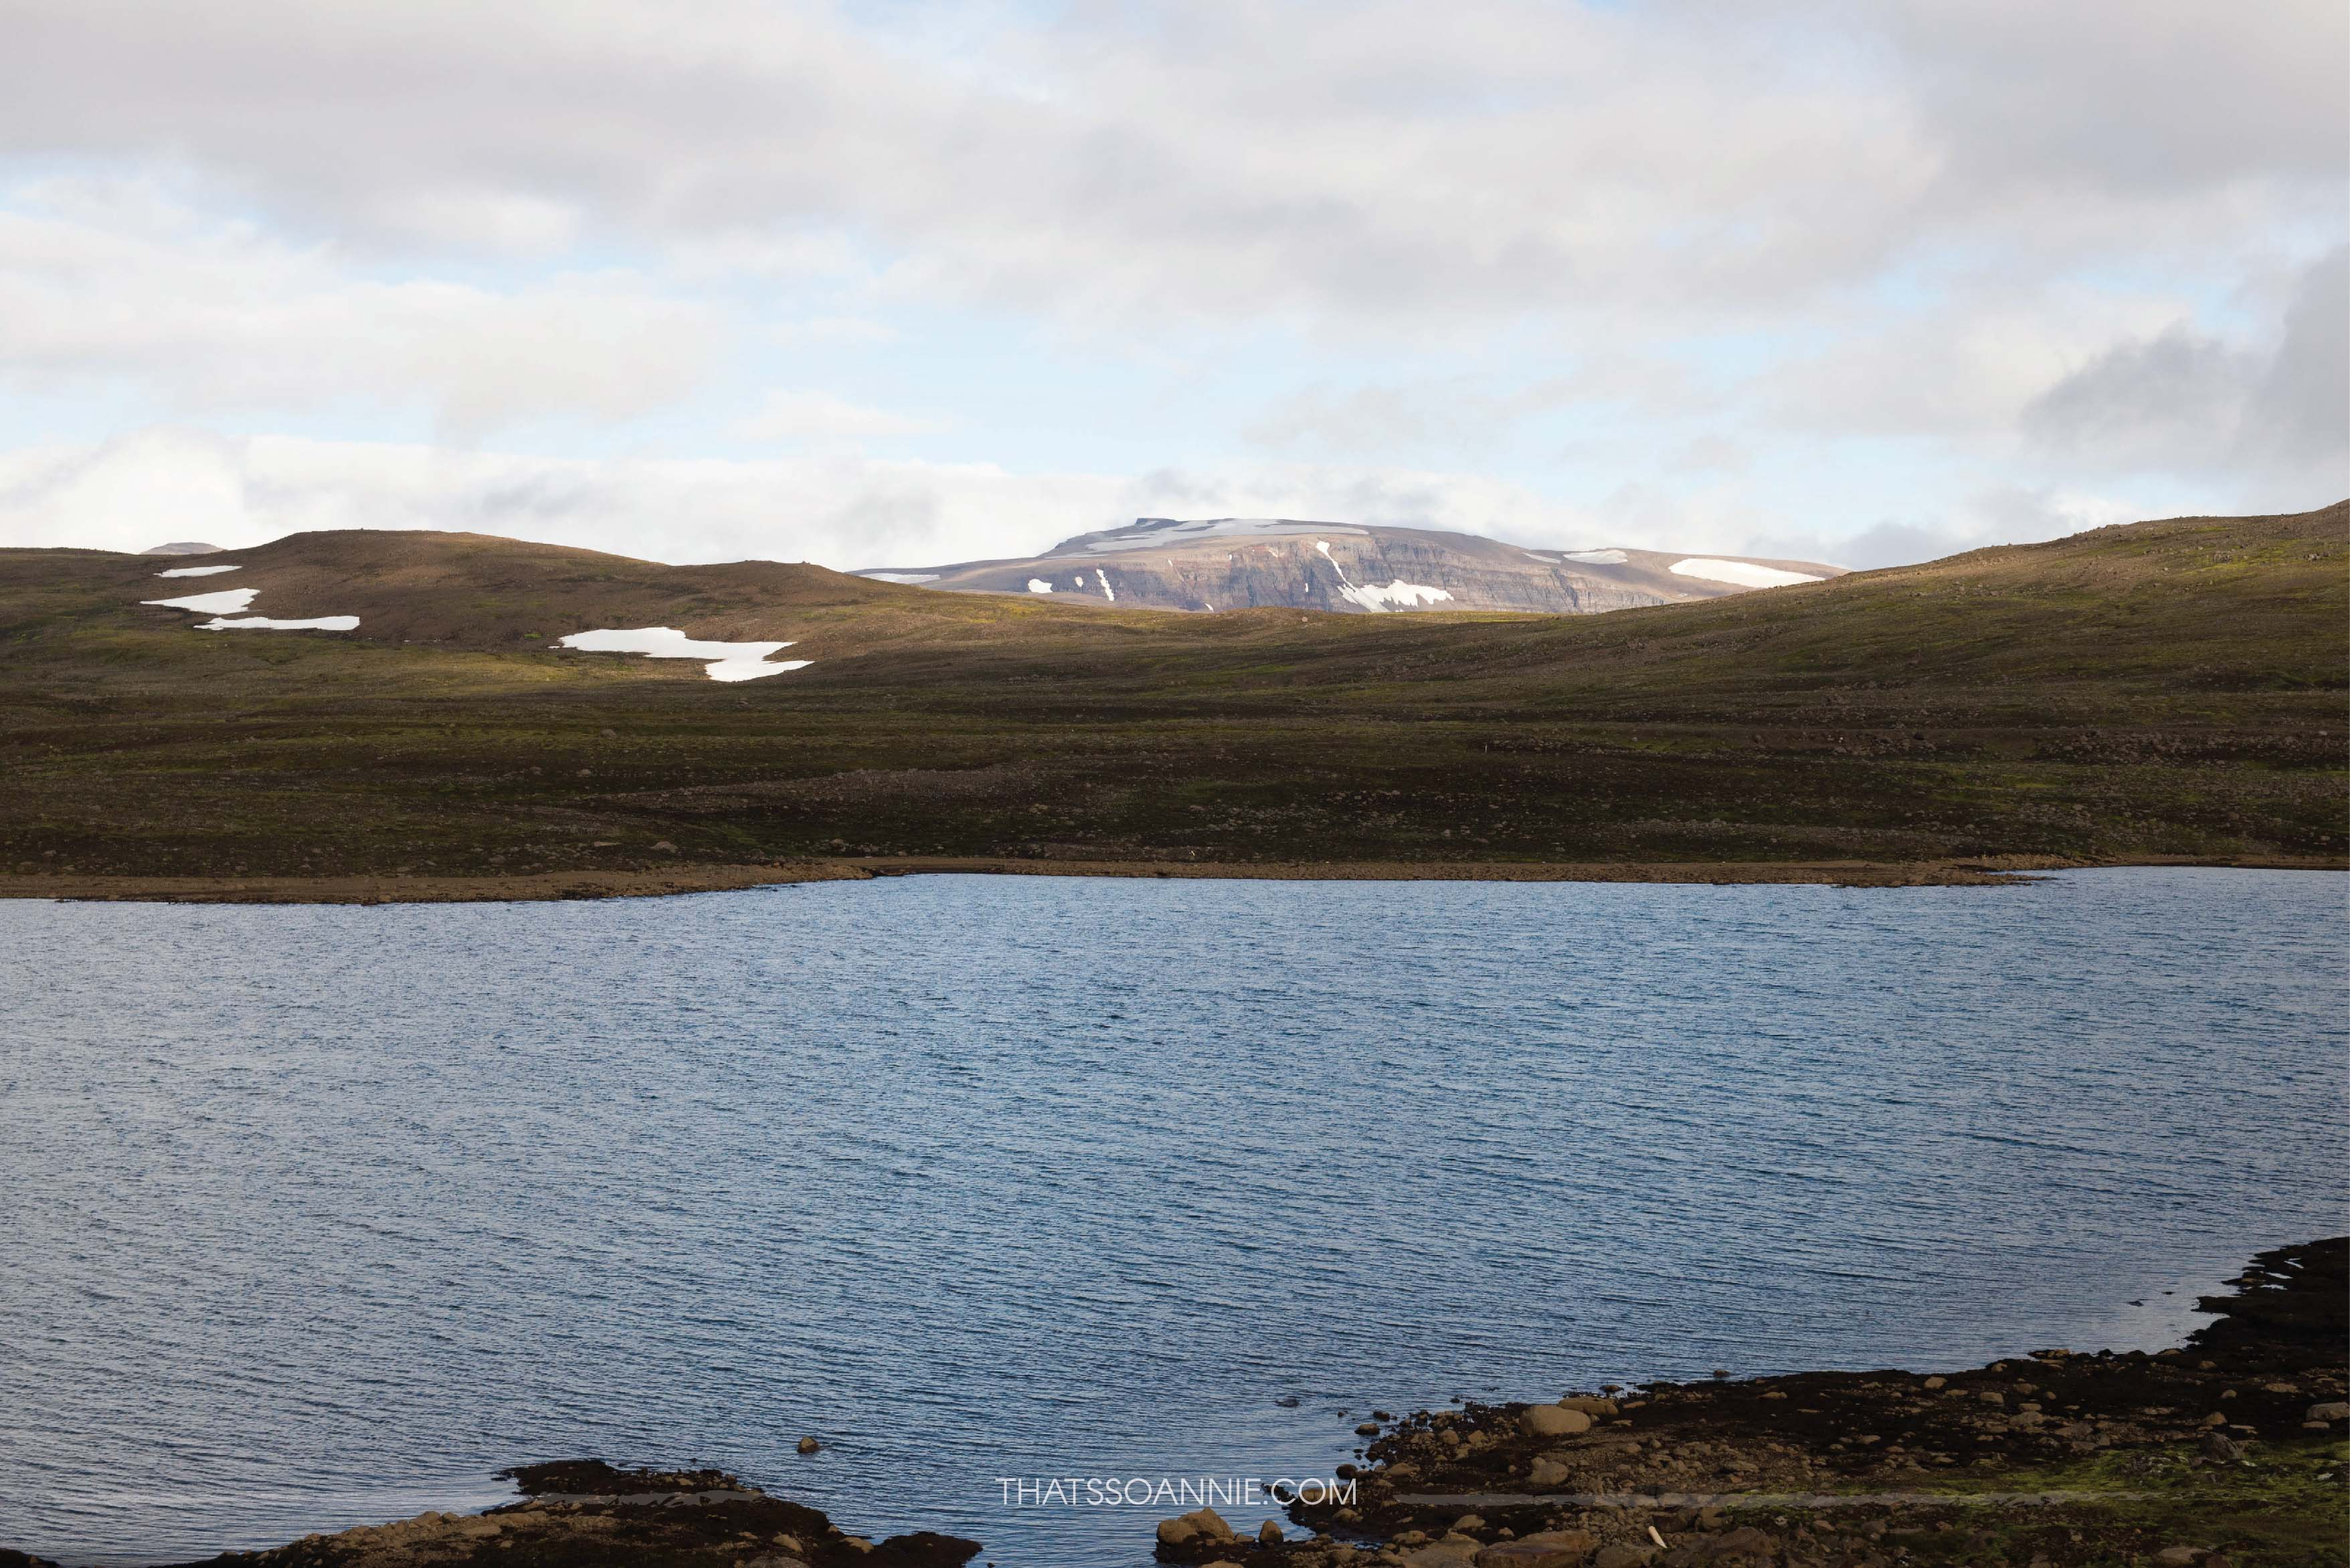 The secret lake in the mountains, Heiðarvatn